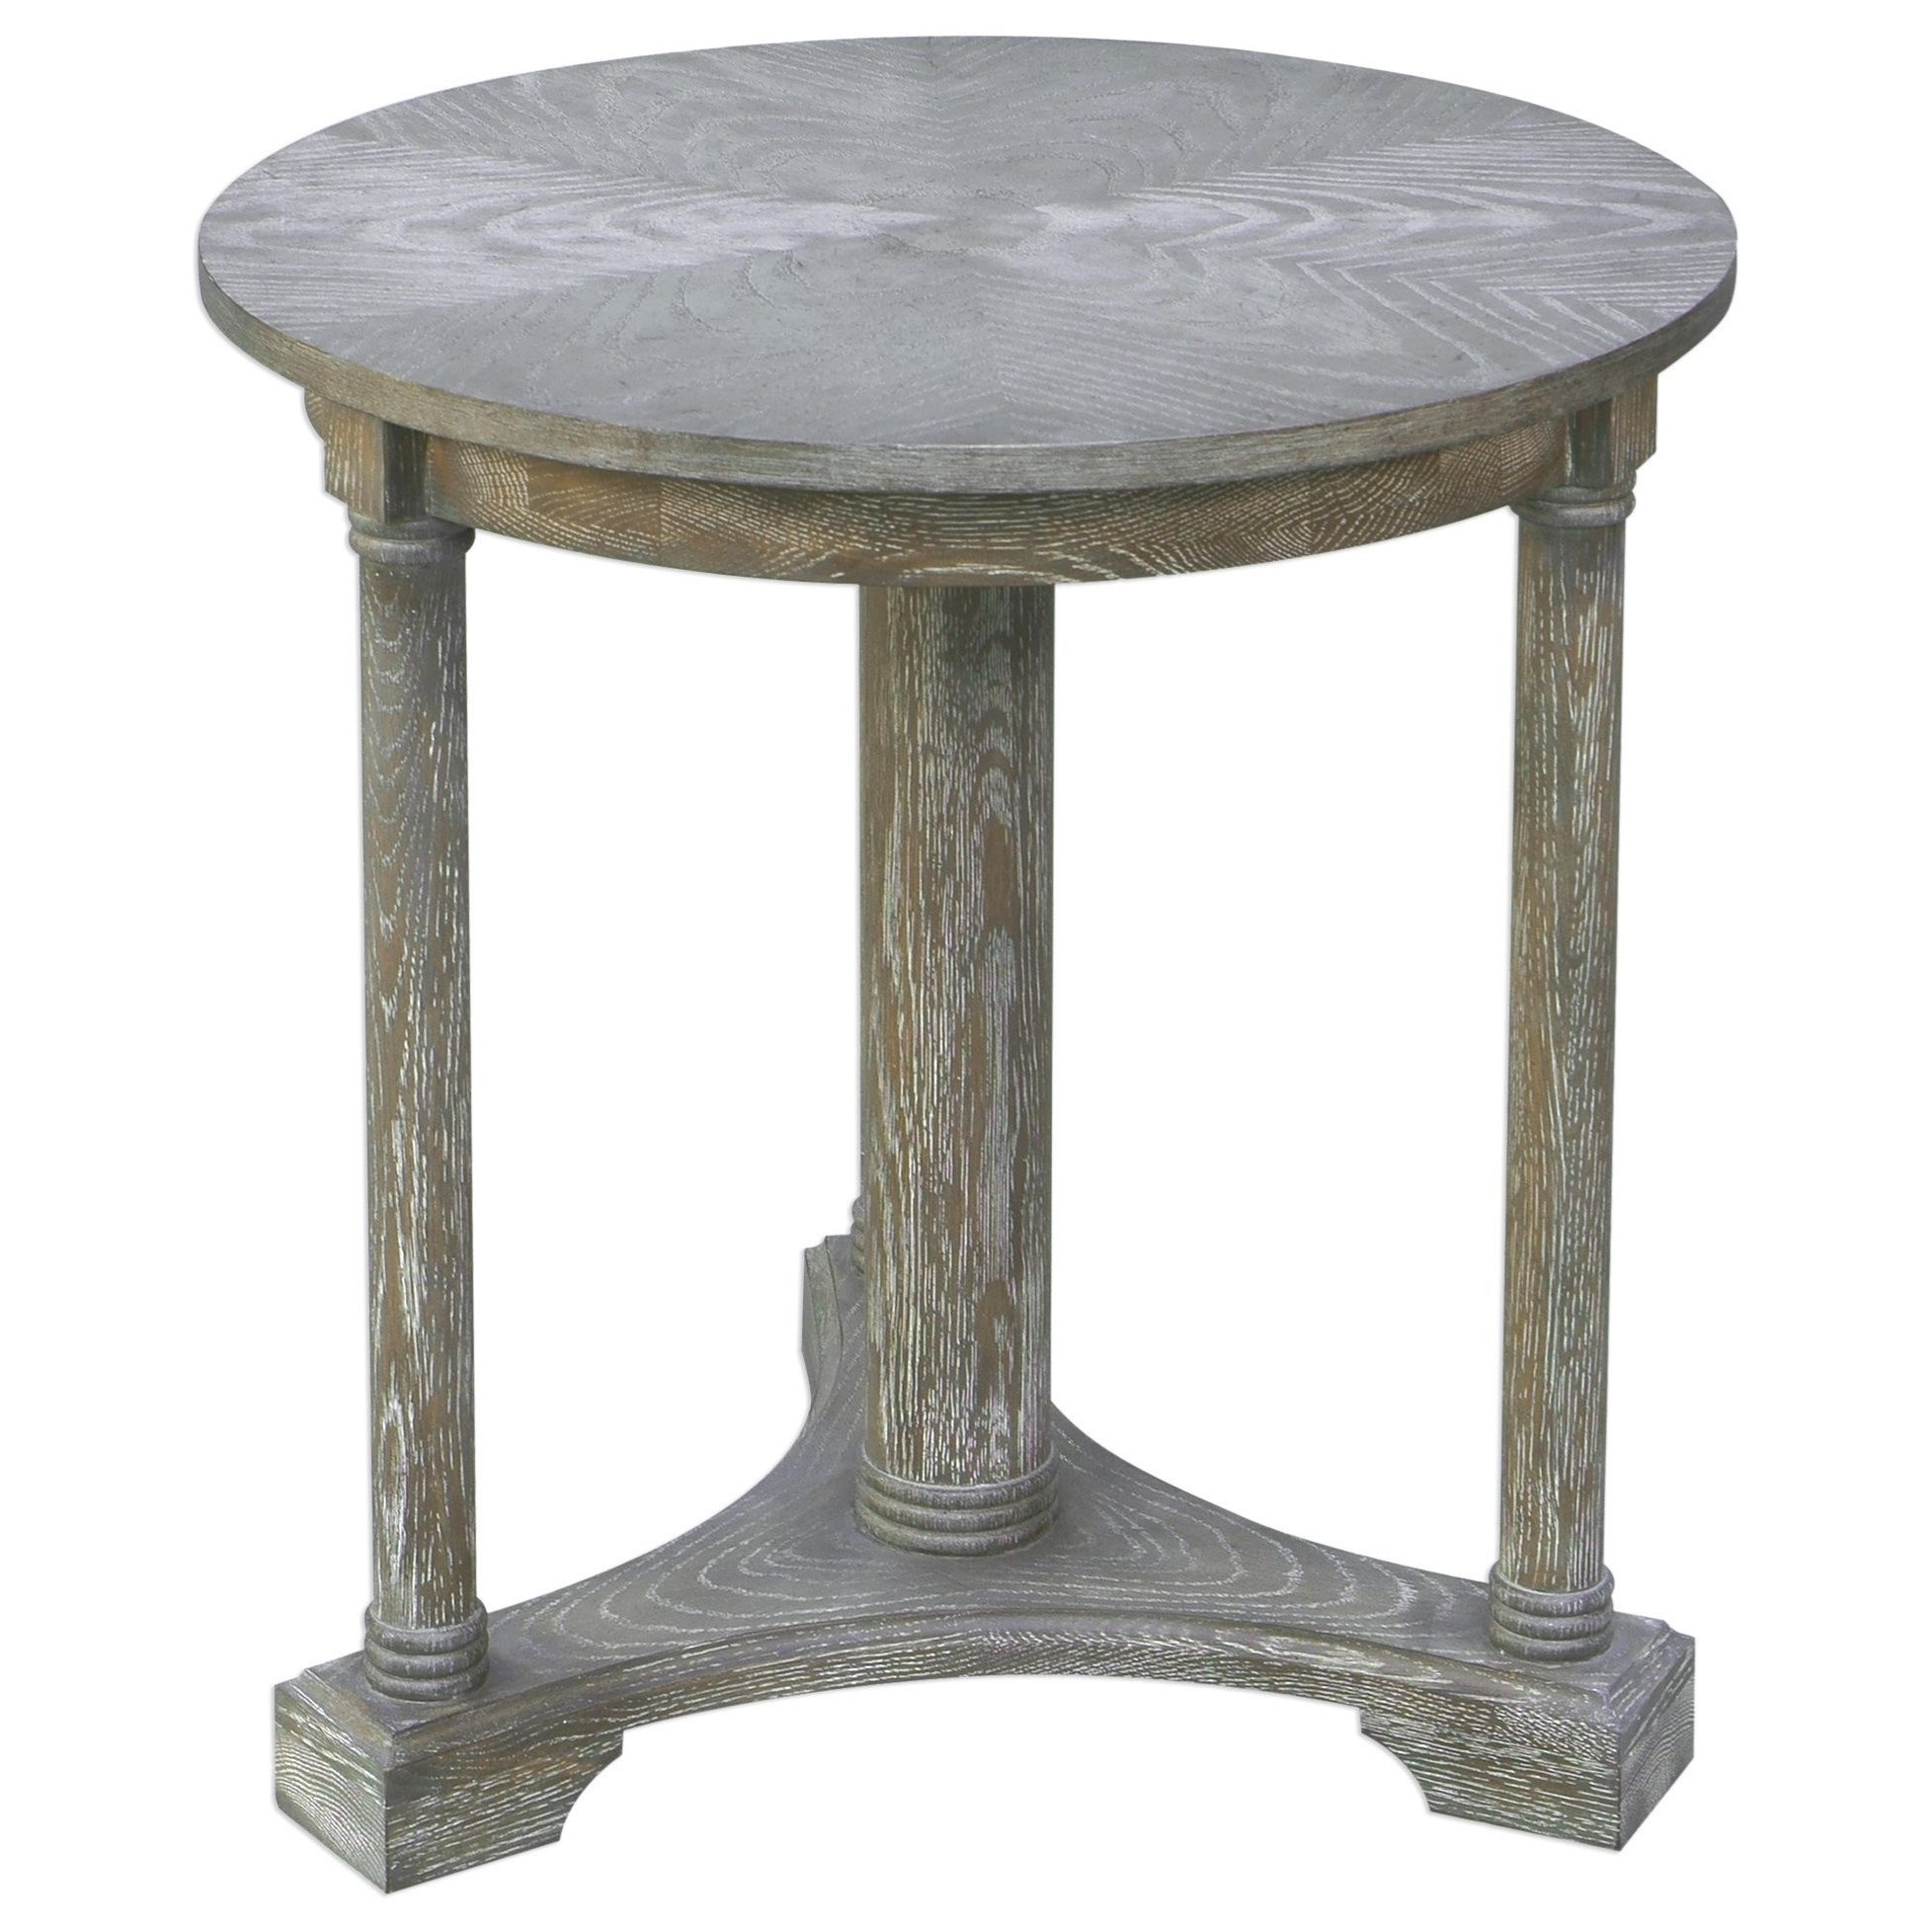 Accent Furniture - Occasional Tables Thema Weathered Gray Accent Table by Uttermost at Goffena Furniture & Mattress Center